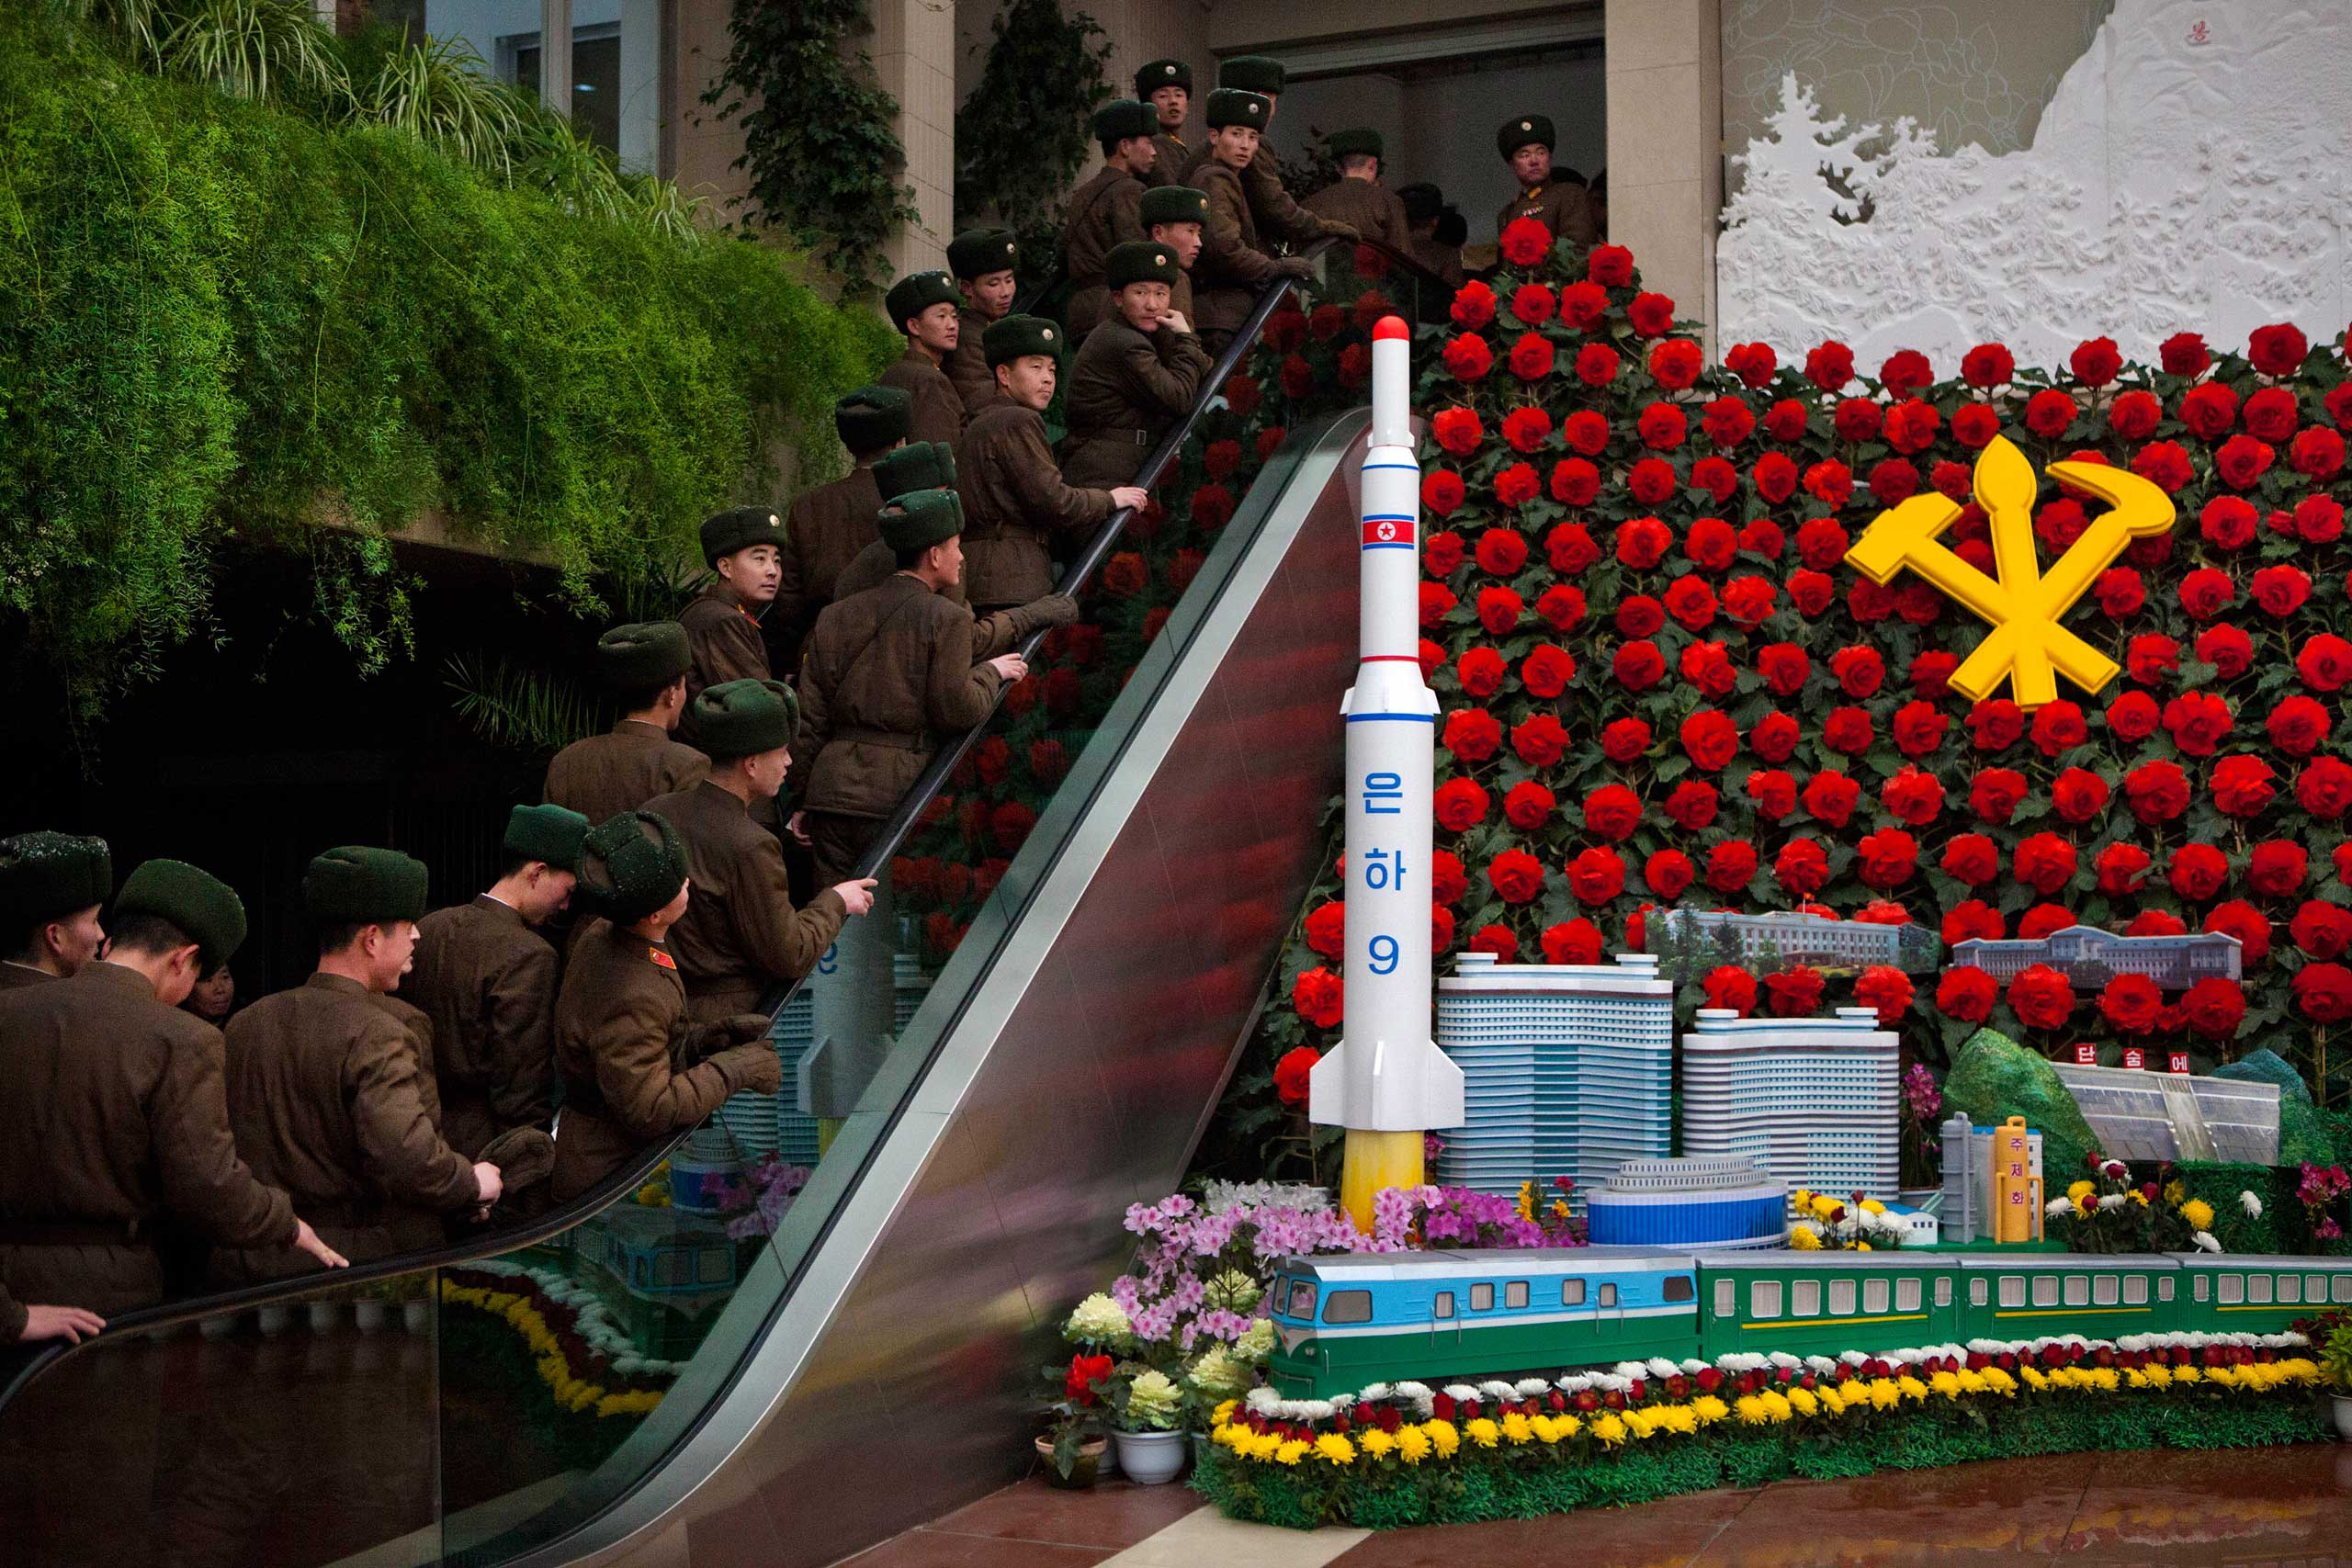 Feb. 17, 2013. North Korean soldiers ride an escalator past a model of their country's Unha Rocket as they enter an exhibition in Pyongyang, North Korea.